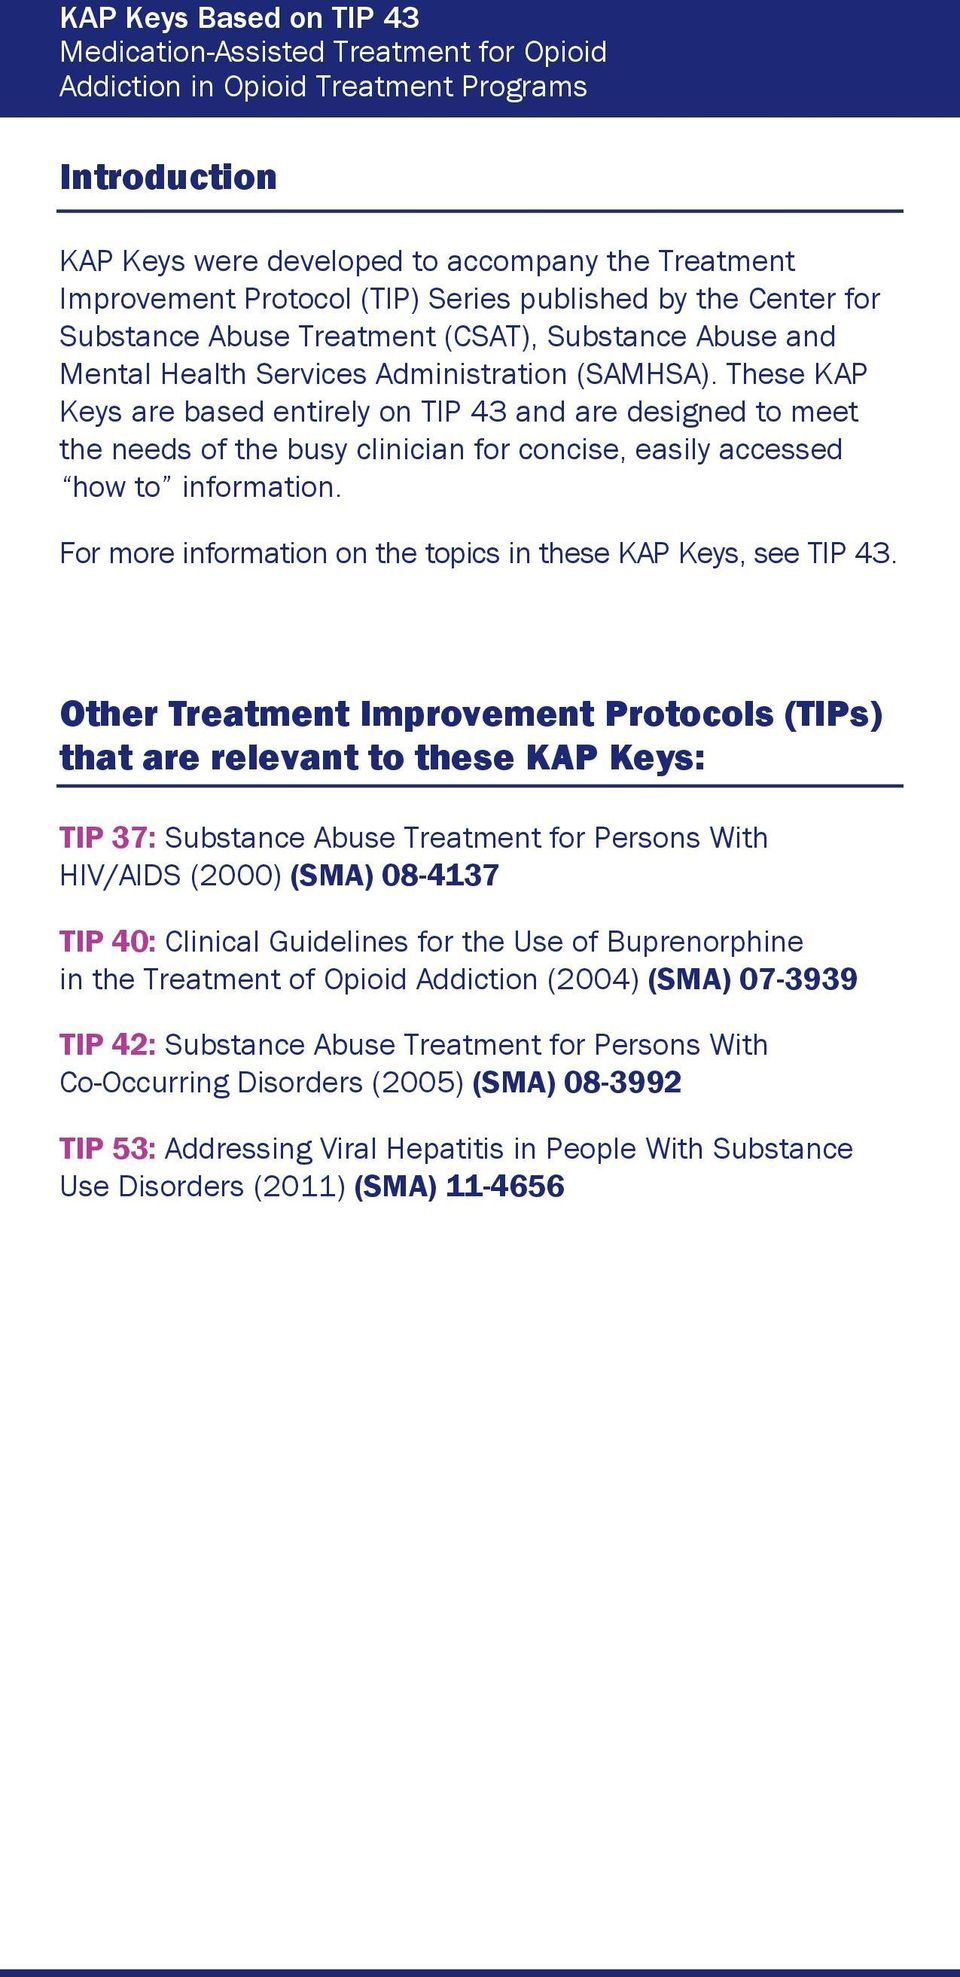 For more information on the topics in these KAP Keys, see TIP 43.